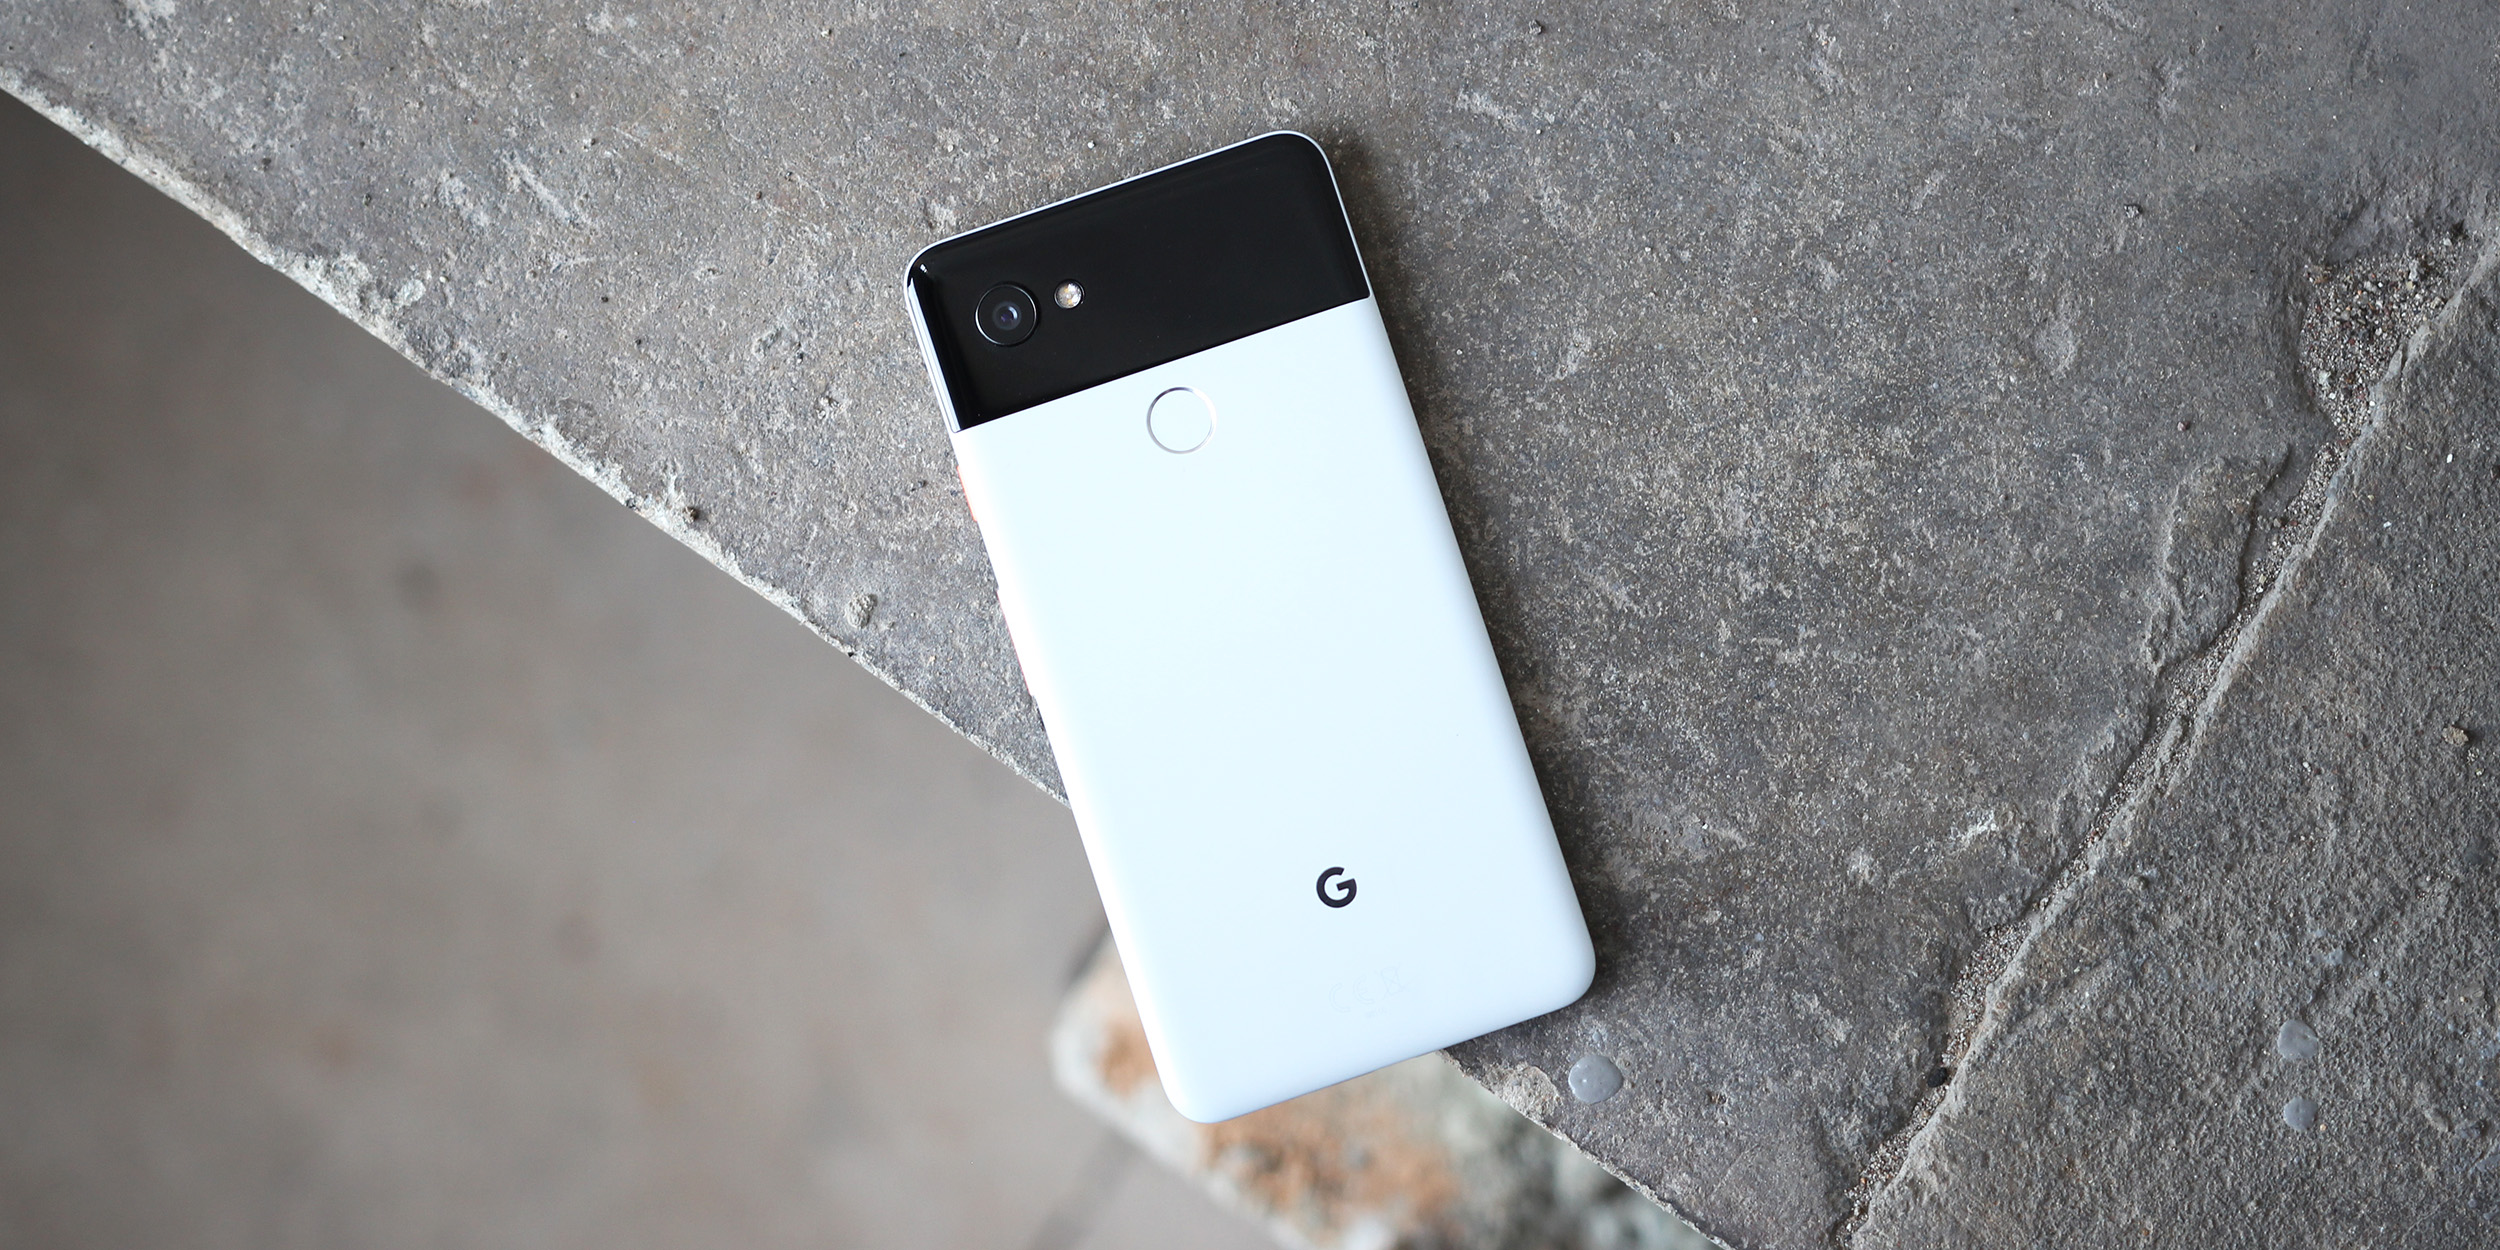 9to5Toys Letzter Anruf: Pixel 2 XL 64GB 400, Sony Xperia Ear Duo 154, Amazon Tap 35, mehr